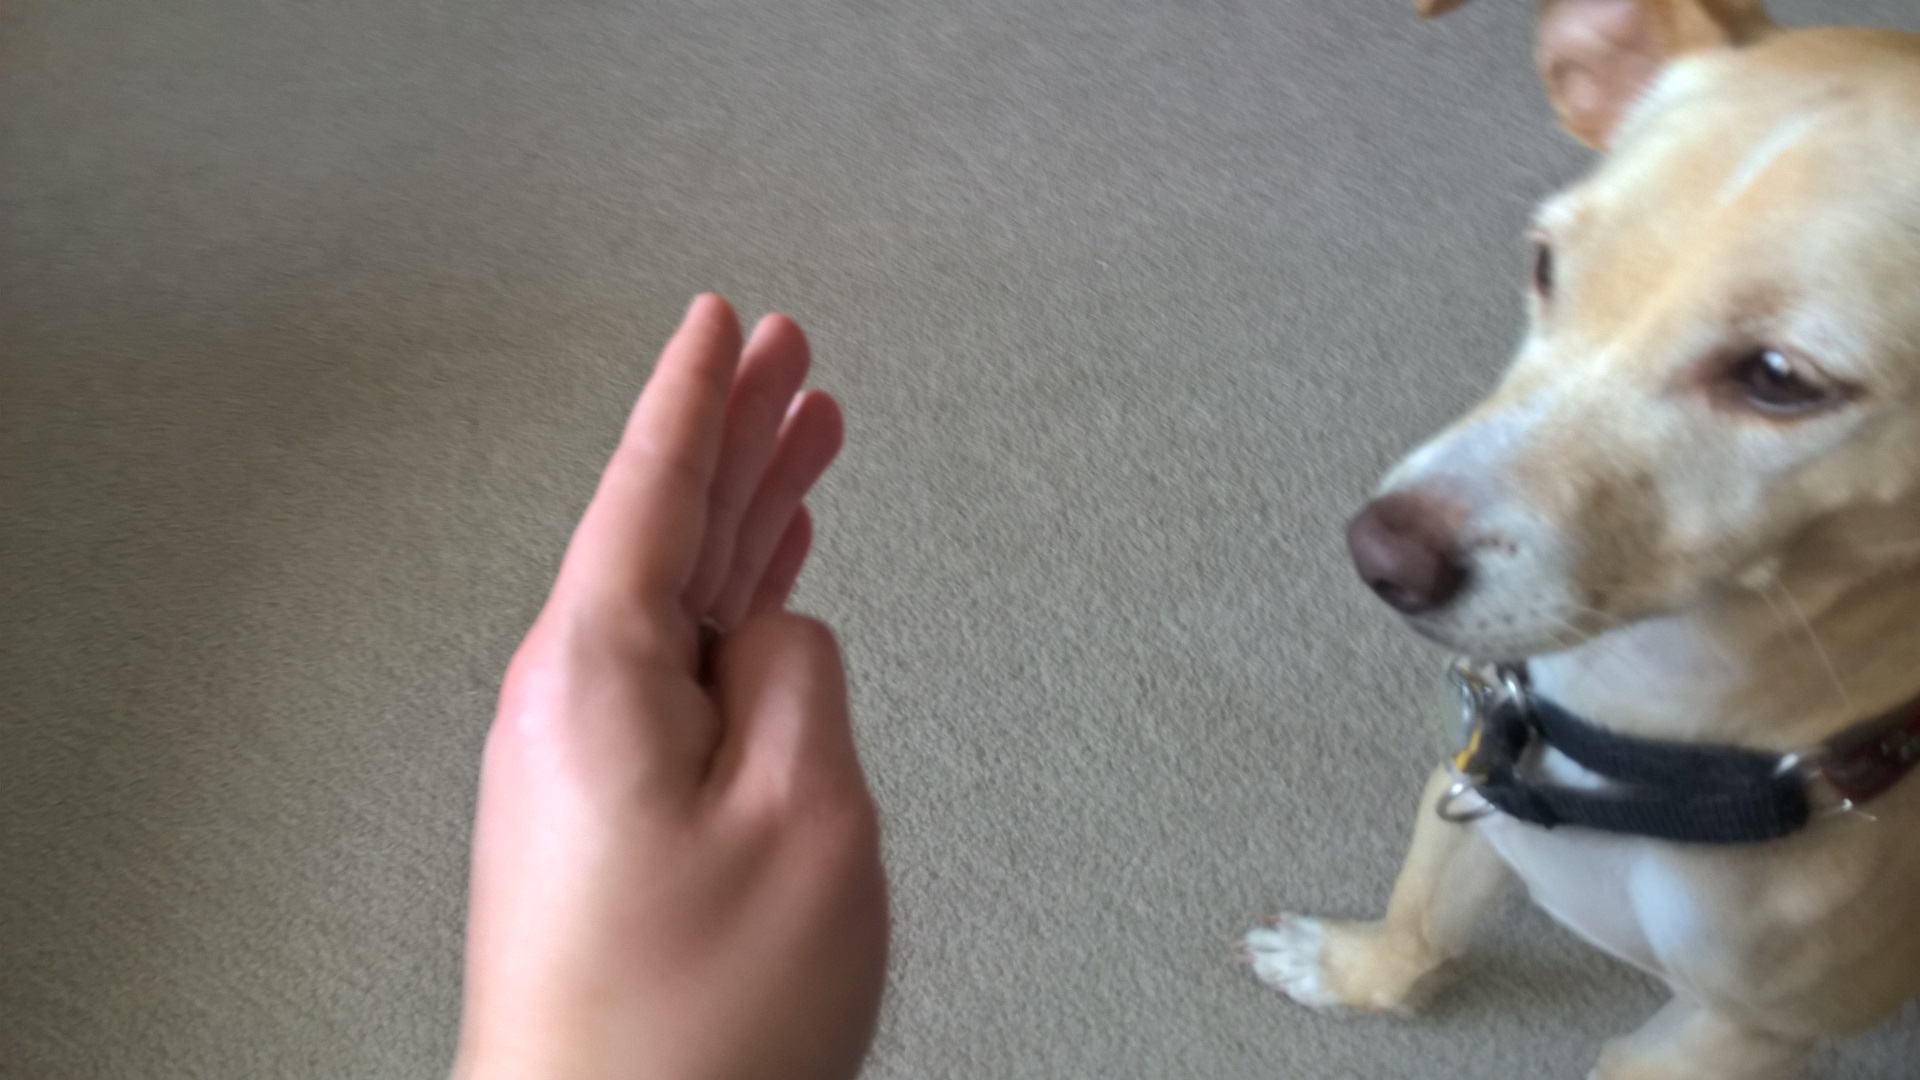 Having the dog make contact with your hand